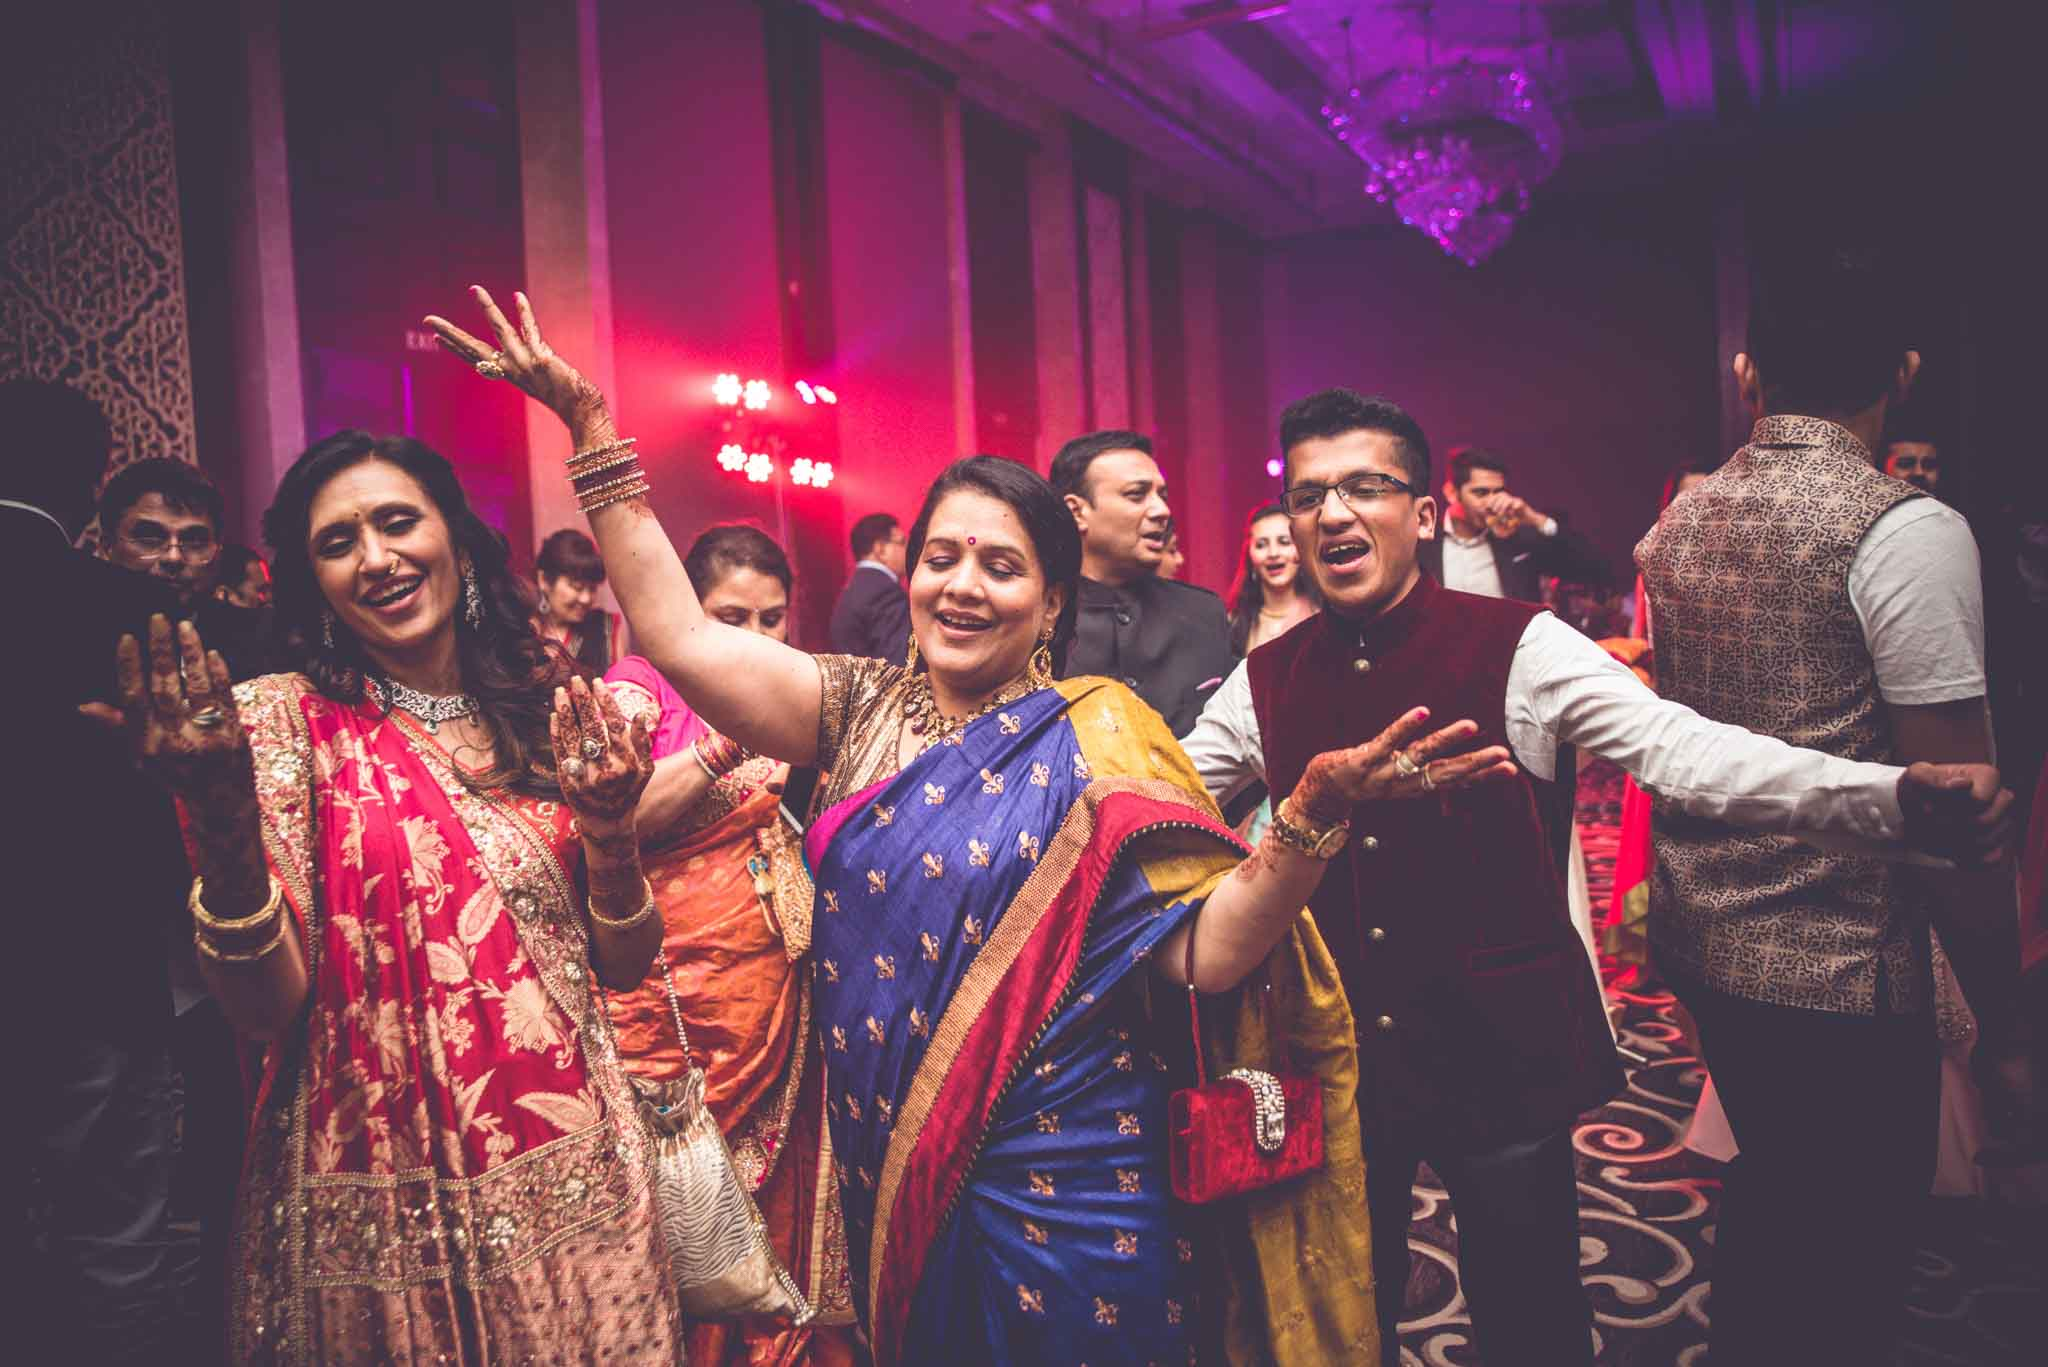 StRegis-Palladium-Mumbai-Candid-Wedding-Photography-83